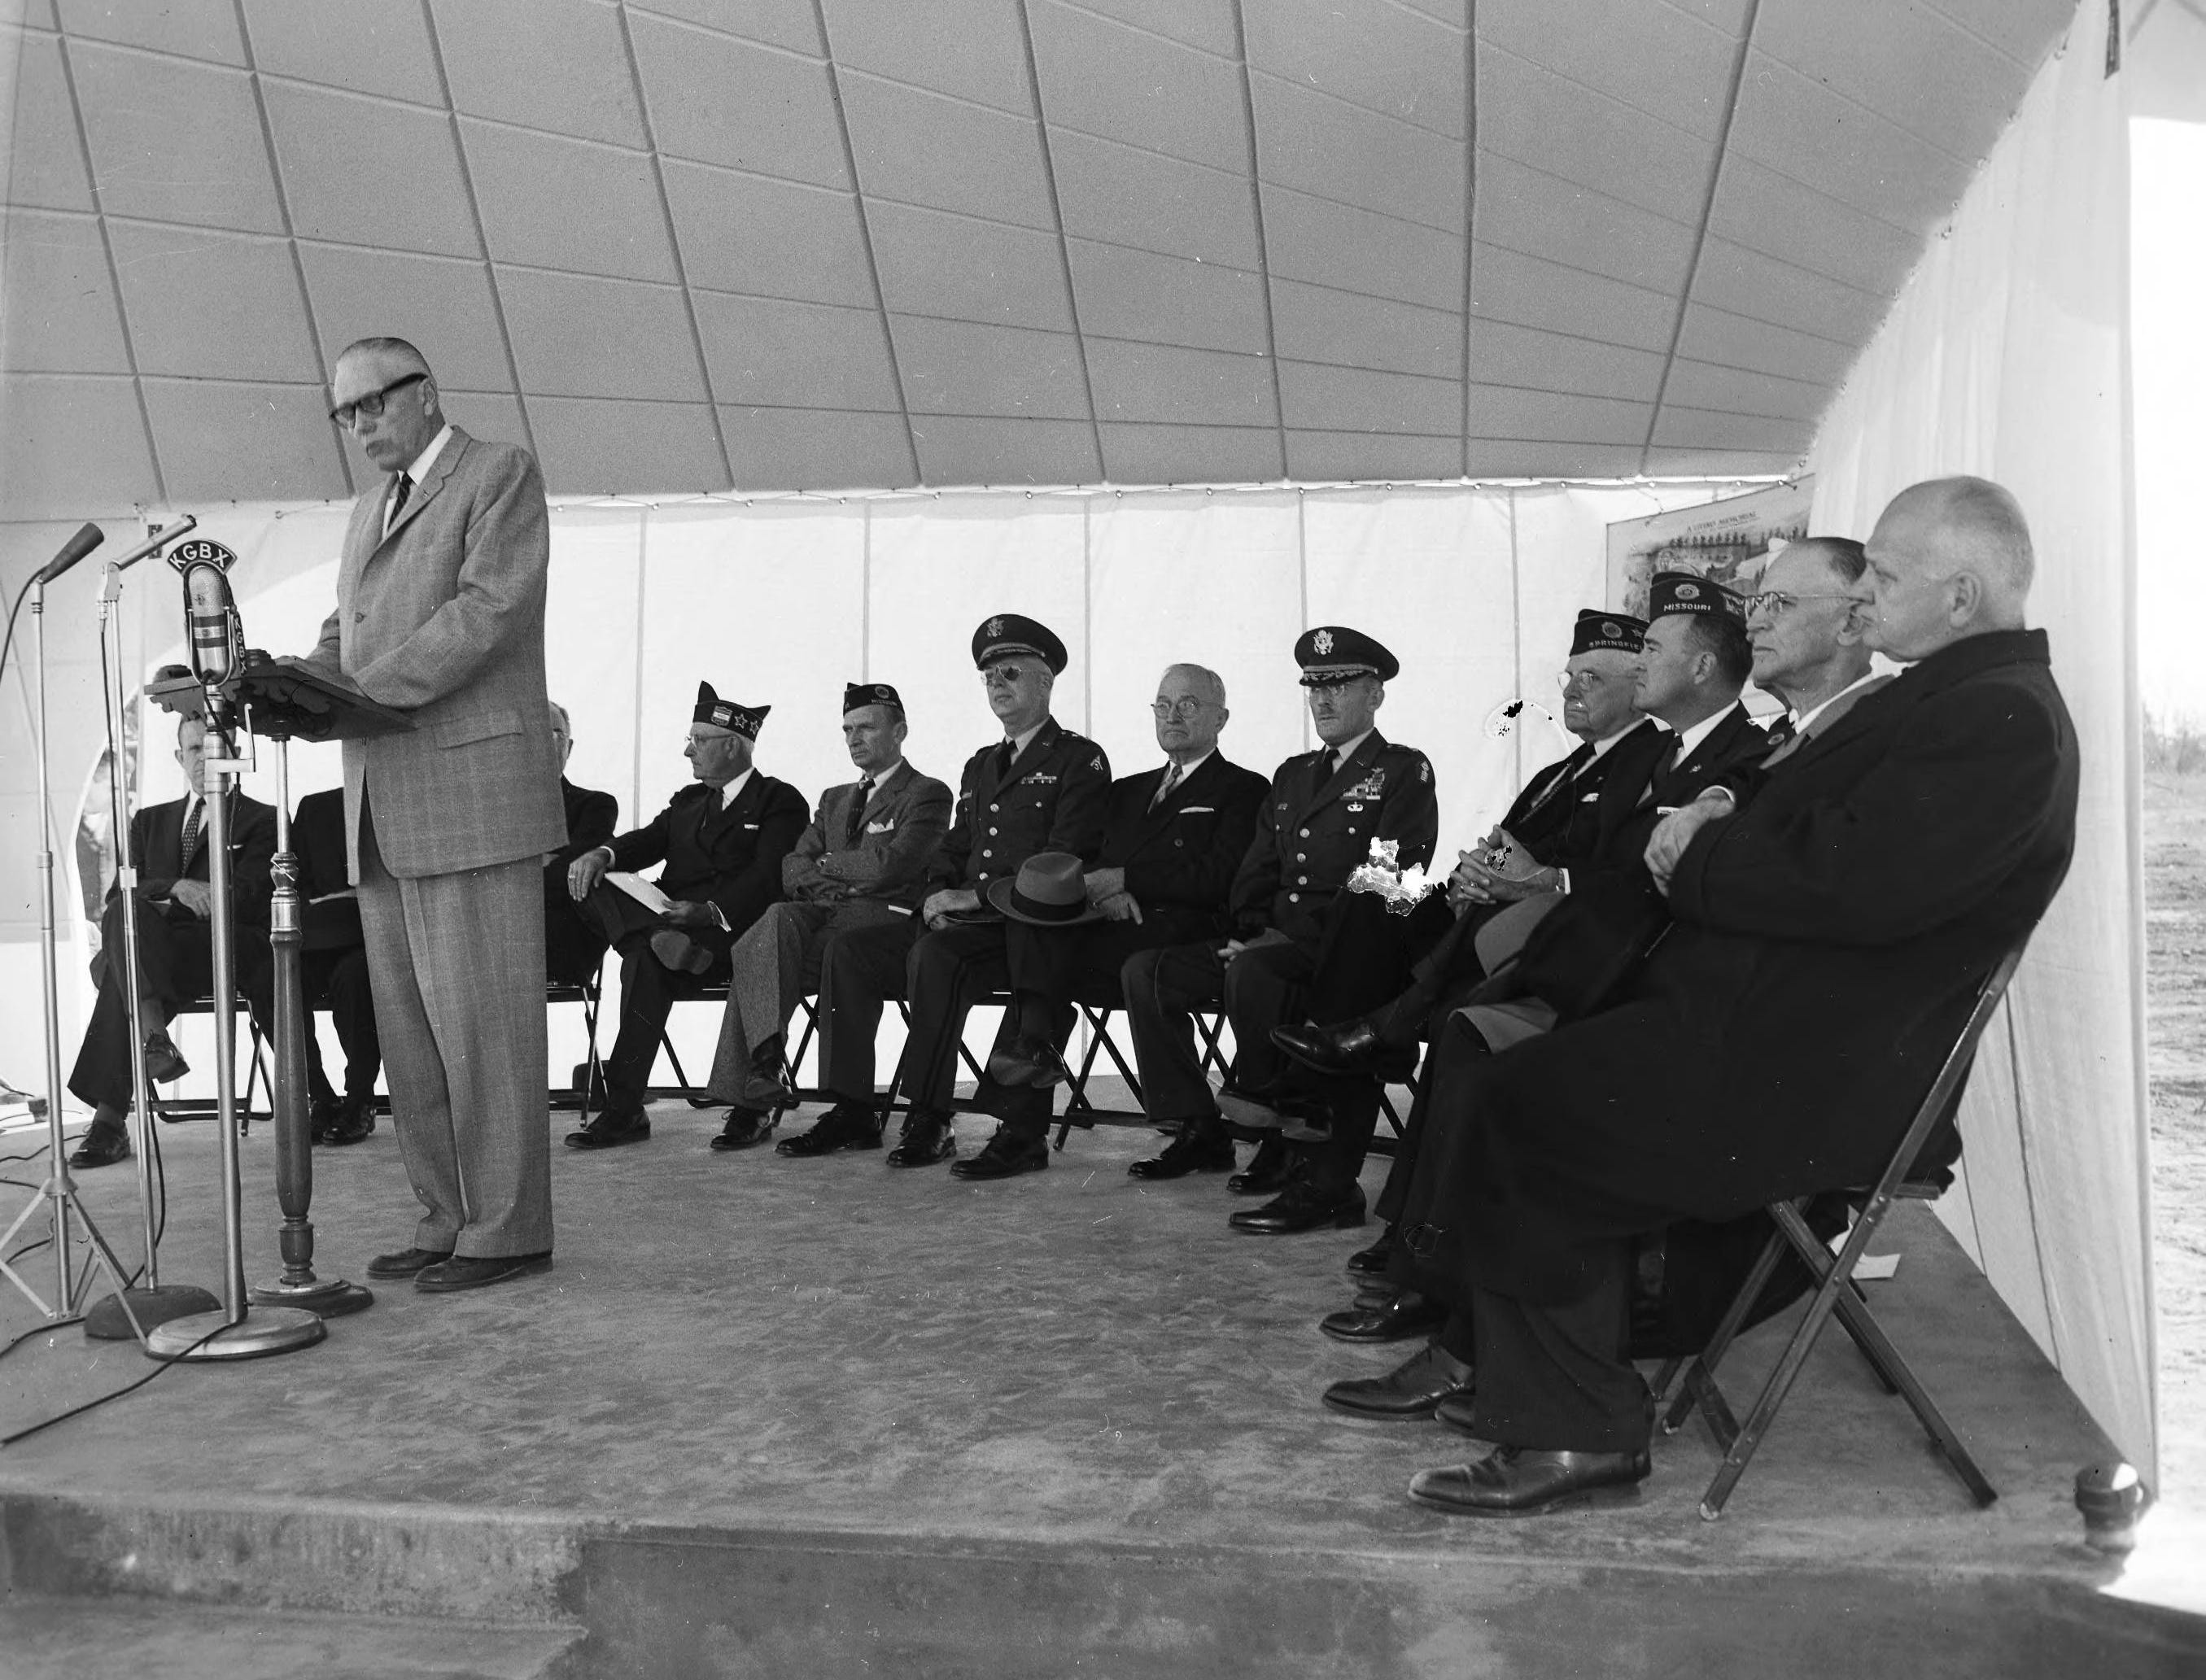 C.E. Baxter, a retired military man , introduced former President Harry S. Truman at the ceremonies dedicating the Living Memorial on Highway 65. The memorial was a long-planned effort of the War Dads. Similar photograph published in the Leader & Press on November 11, 1958.